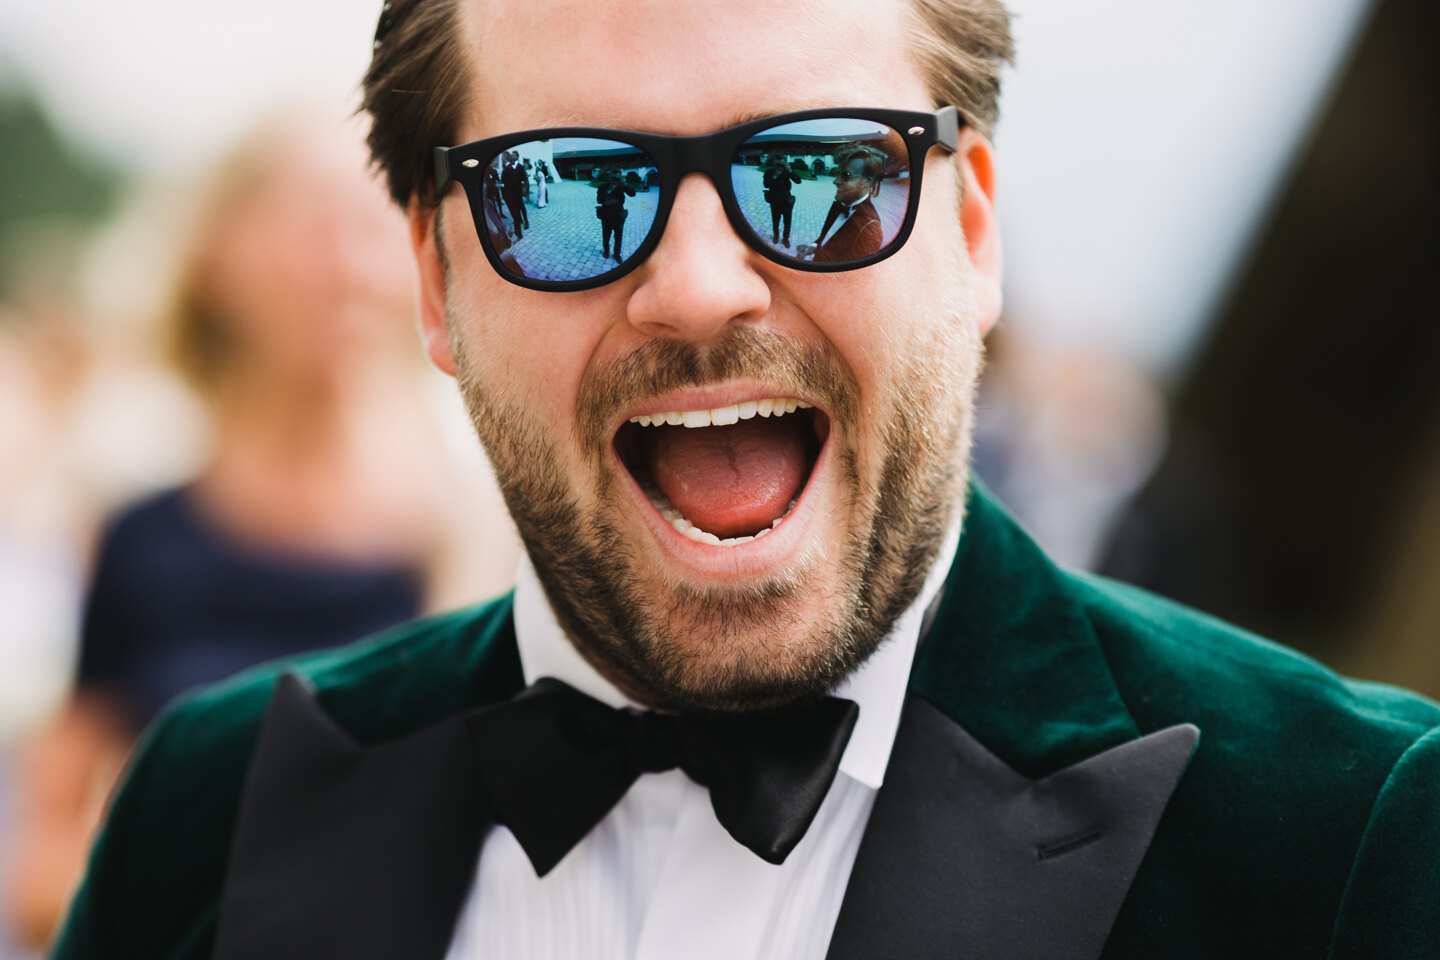 Wedding Photographer in Venice: Portrait of a groom in colored glasses, dressed in a green tuxedo with a bow tie on his neck and smiles broadly